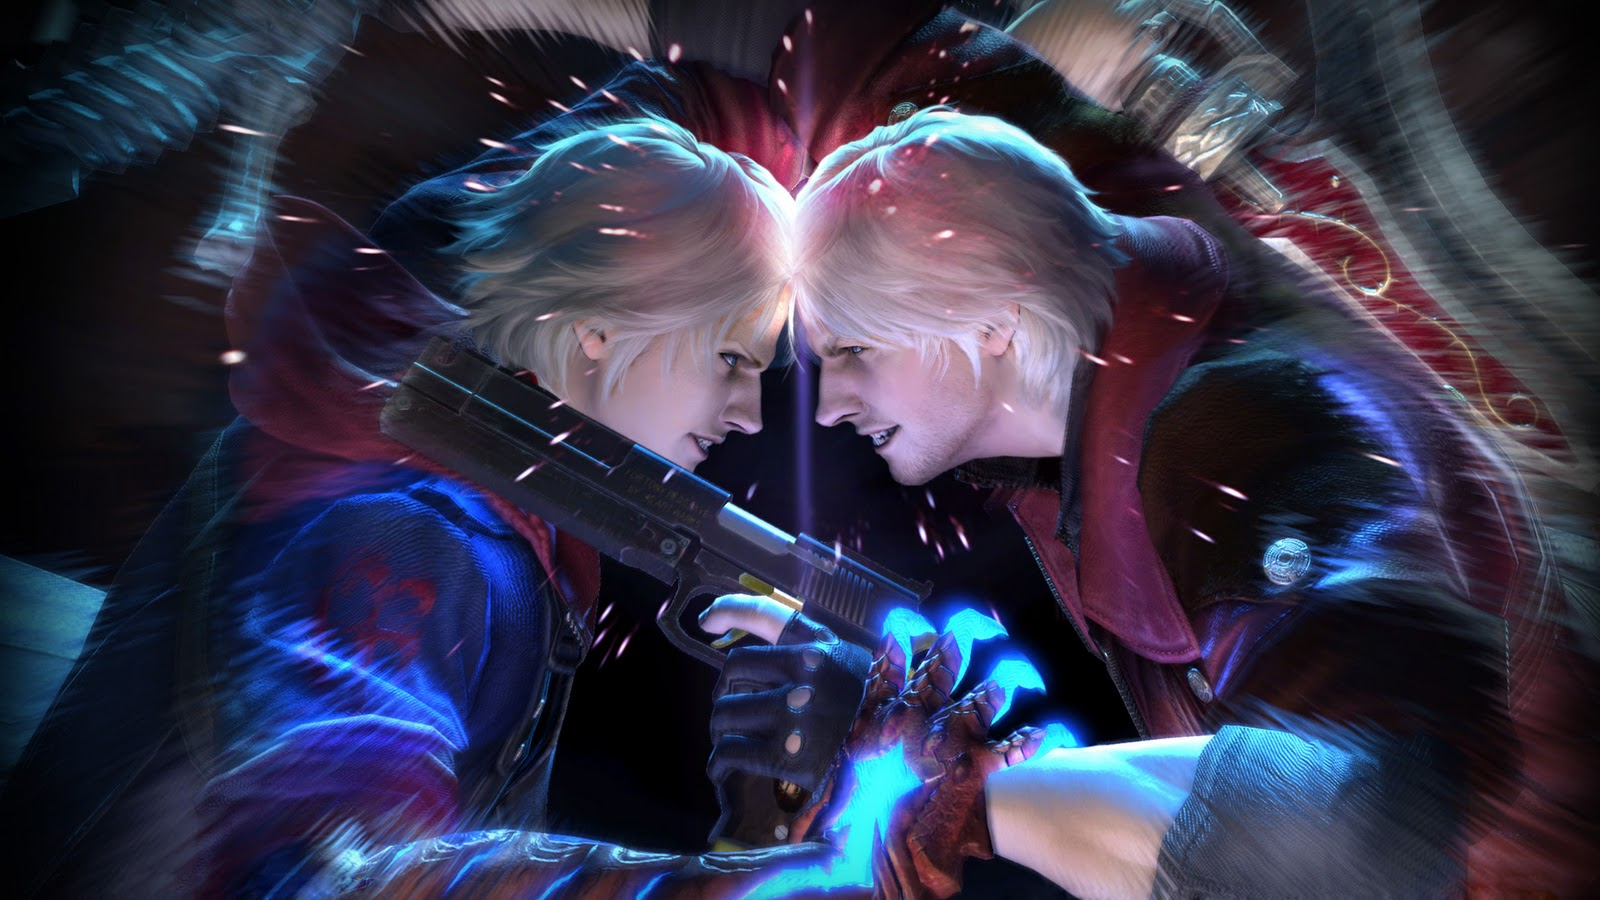 bilinick  devil may cry images and wallpapers